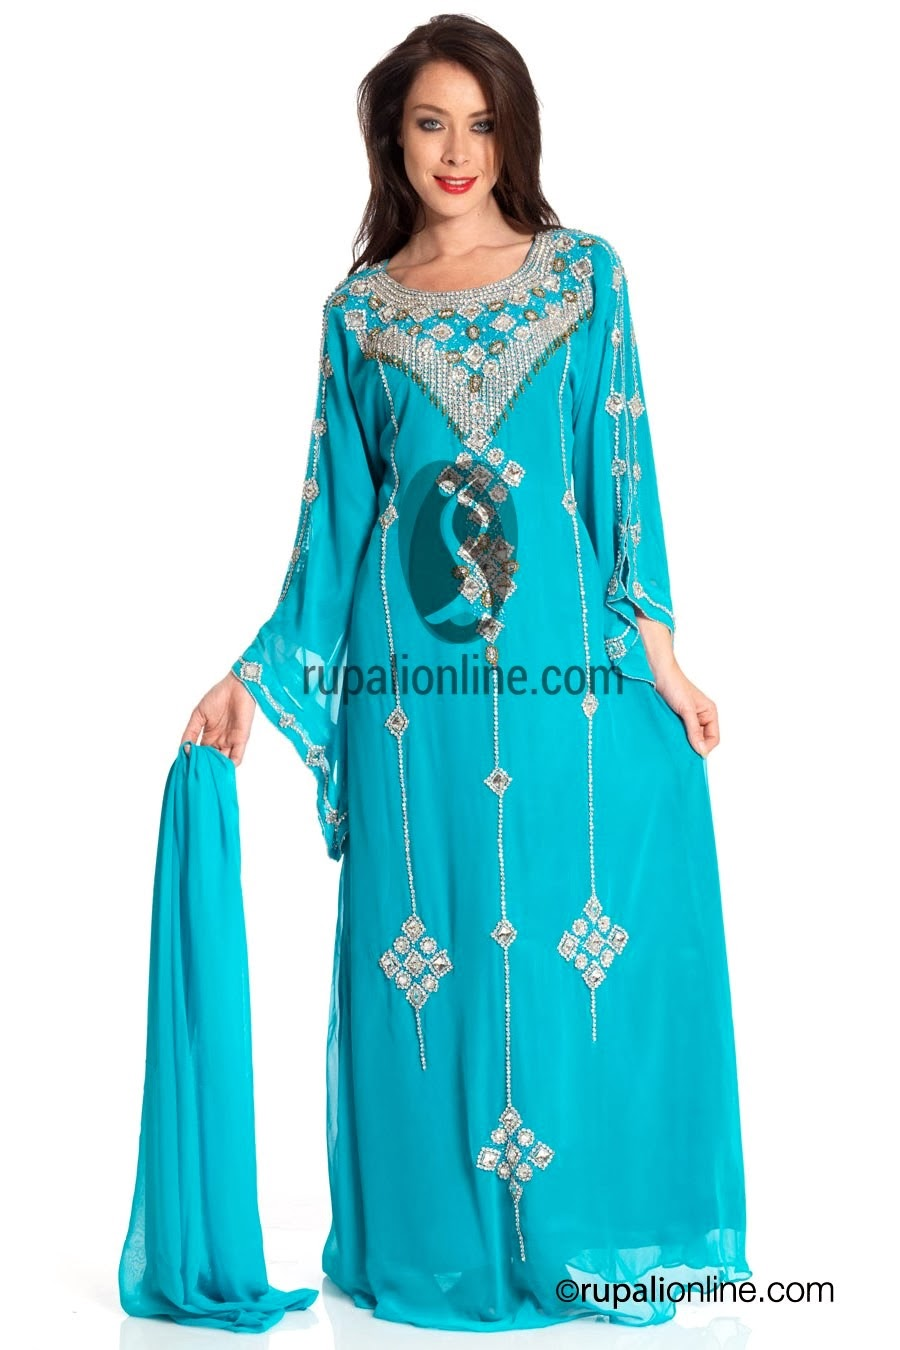 610780351c4 New Colors Of Farashas. Asian Functional Wear Farasha Collection